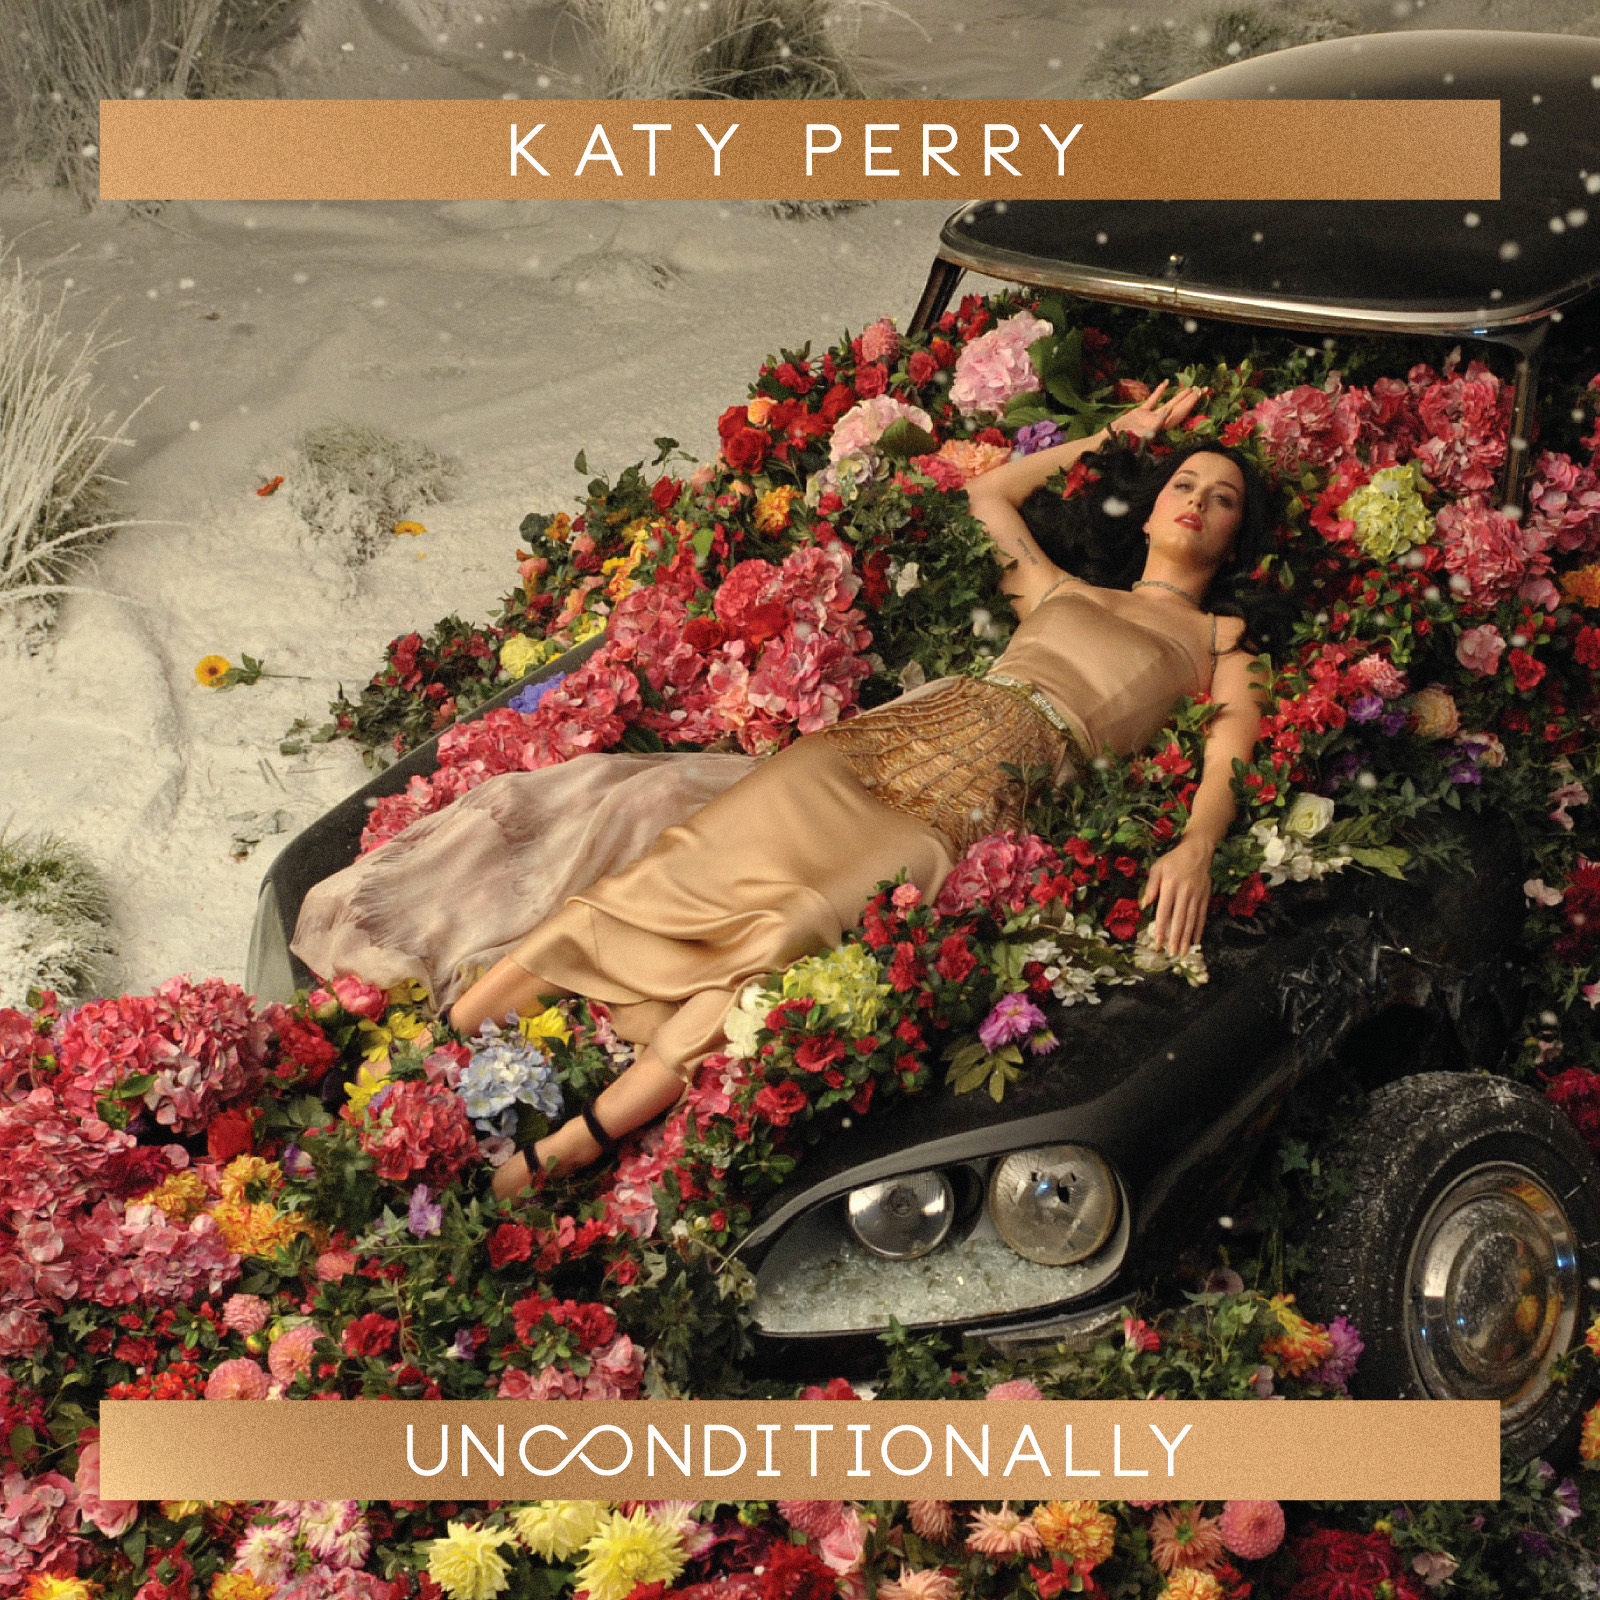 Unconditionally (song) - The Katy Perry Wiki